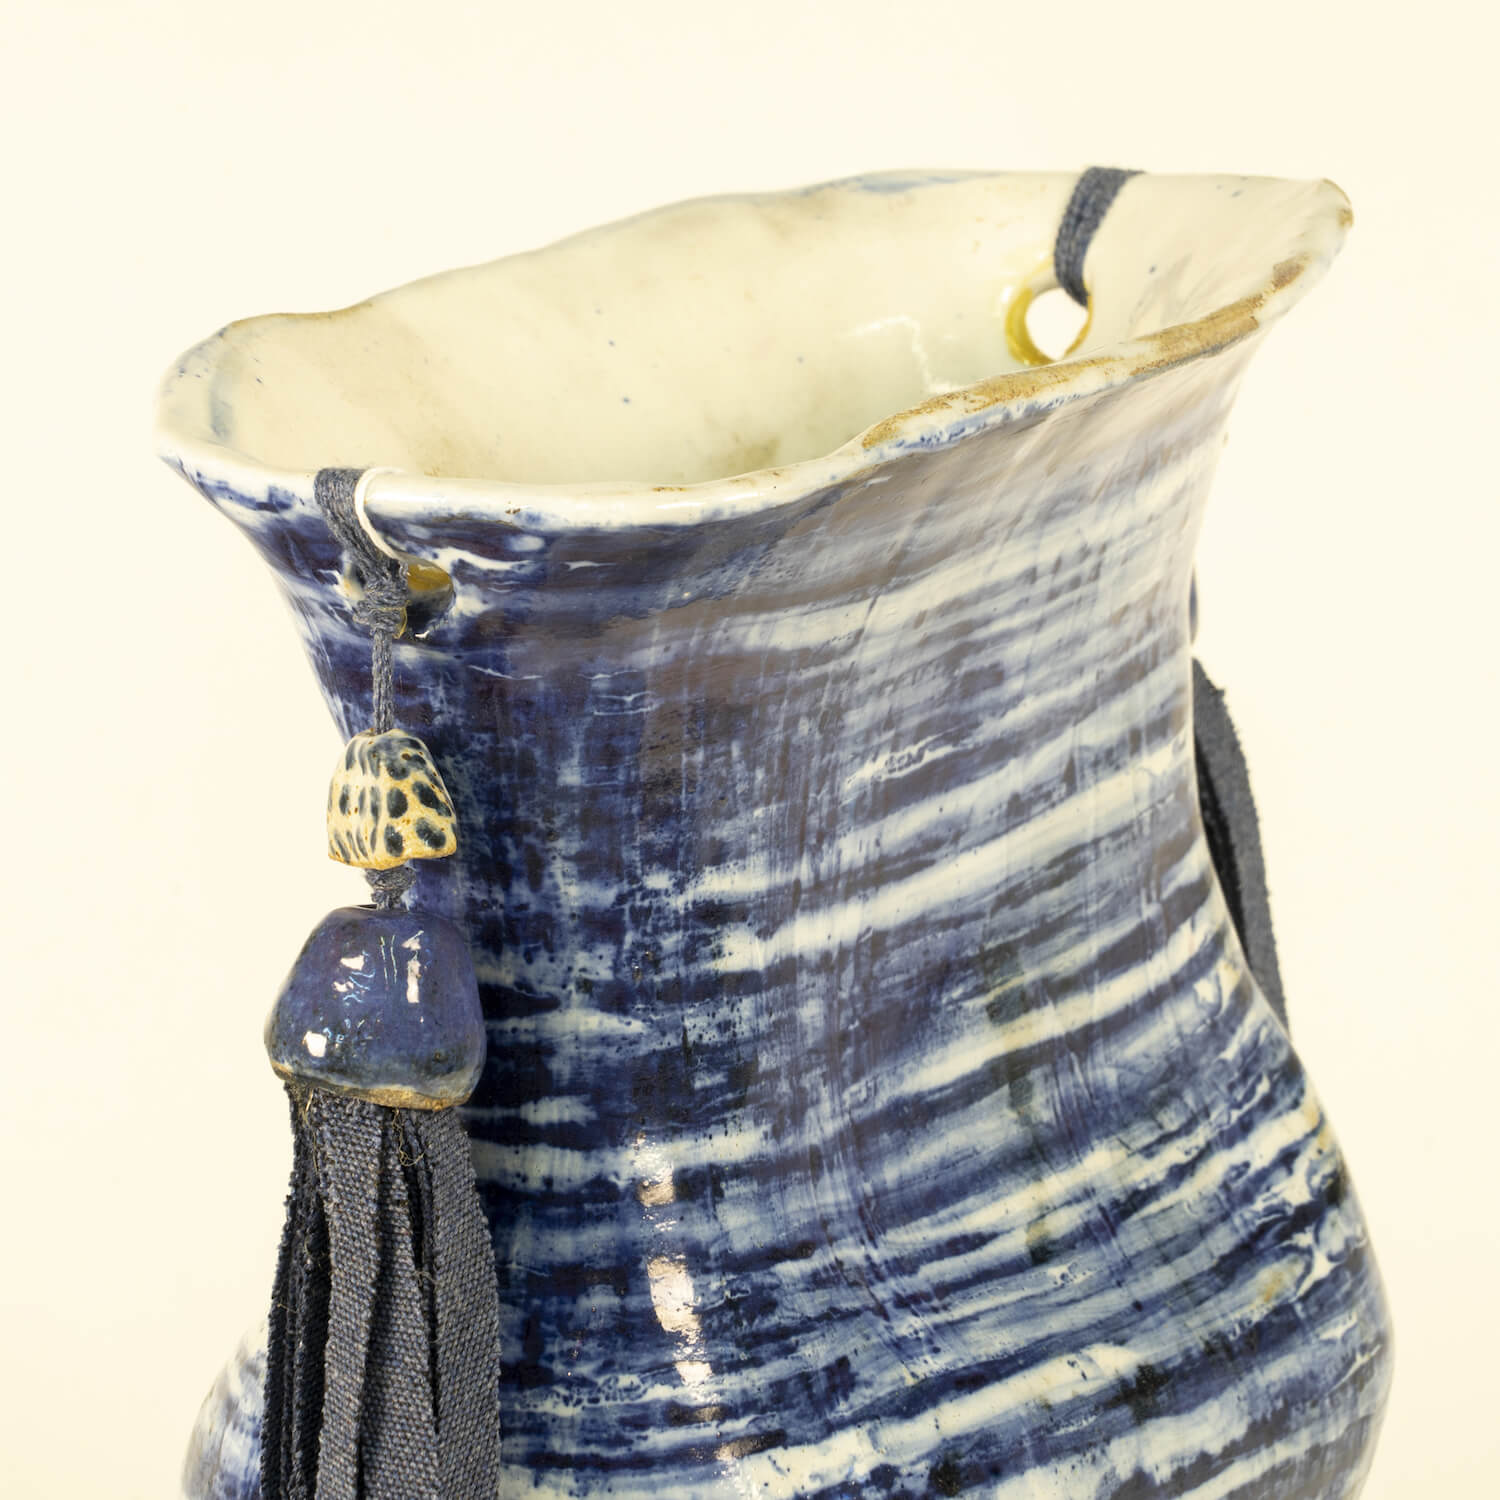 American Studio Pottery, Signed B. Holzky